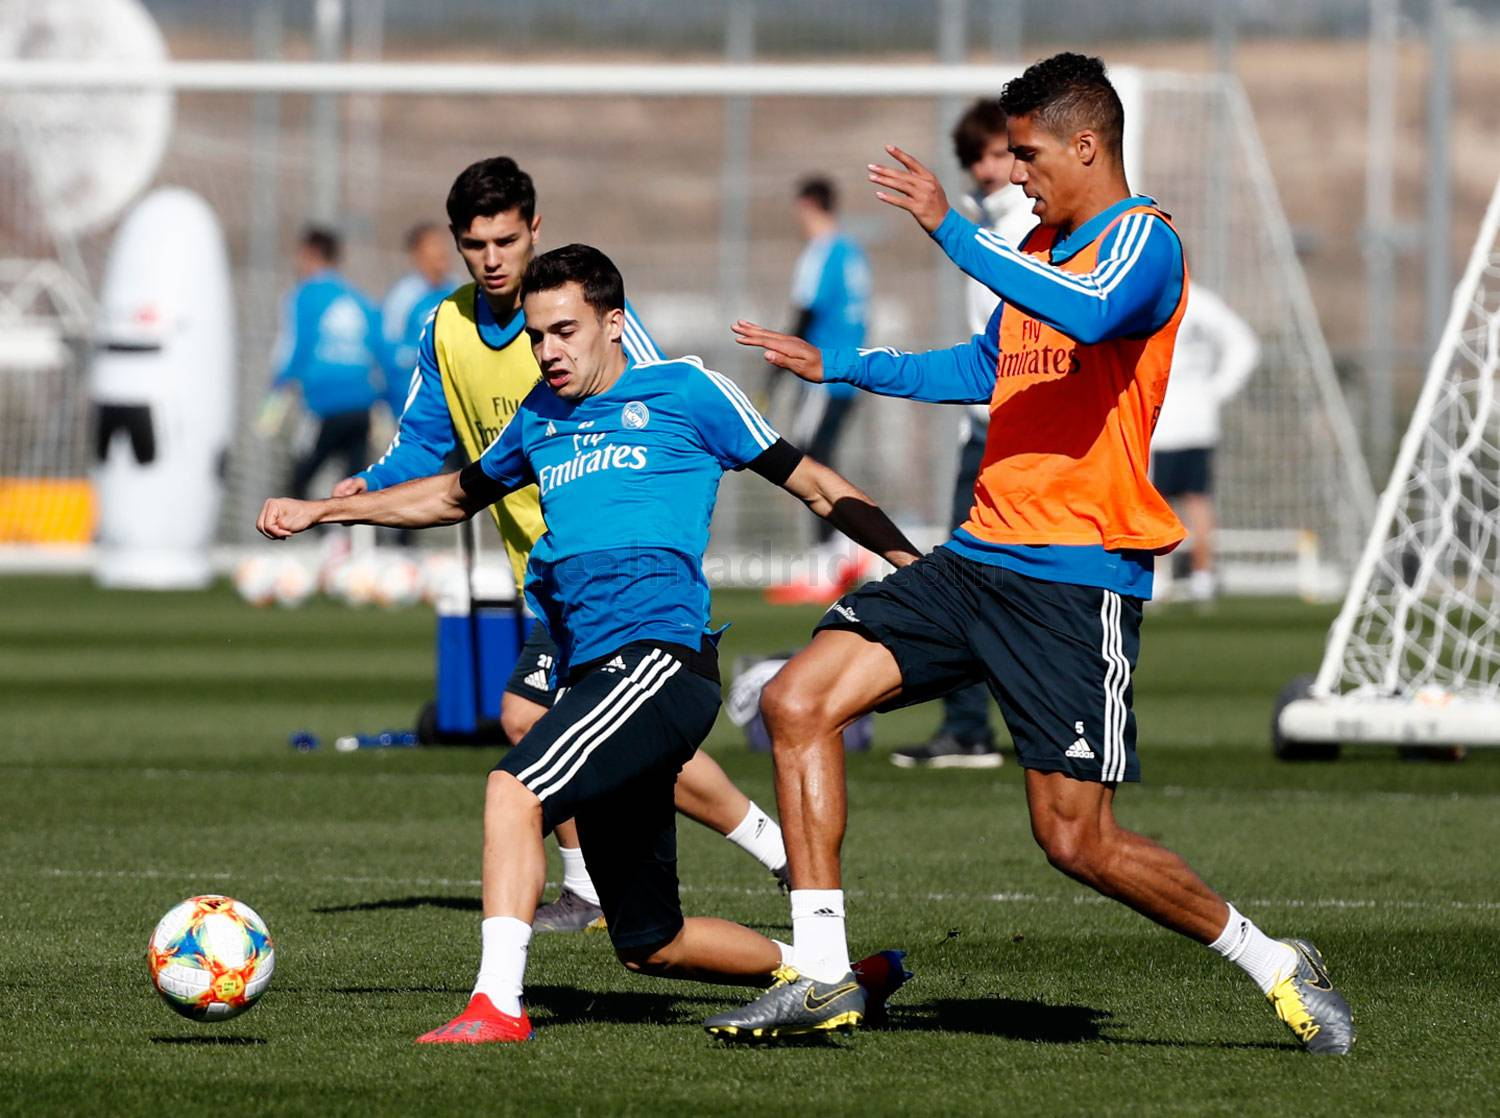 Real Madrid - Entrenamiento del Real Madrid - 26-02-2019